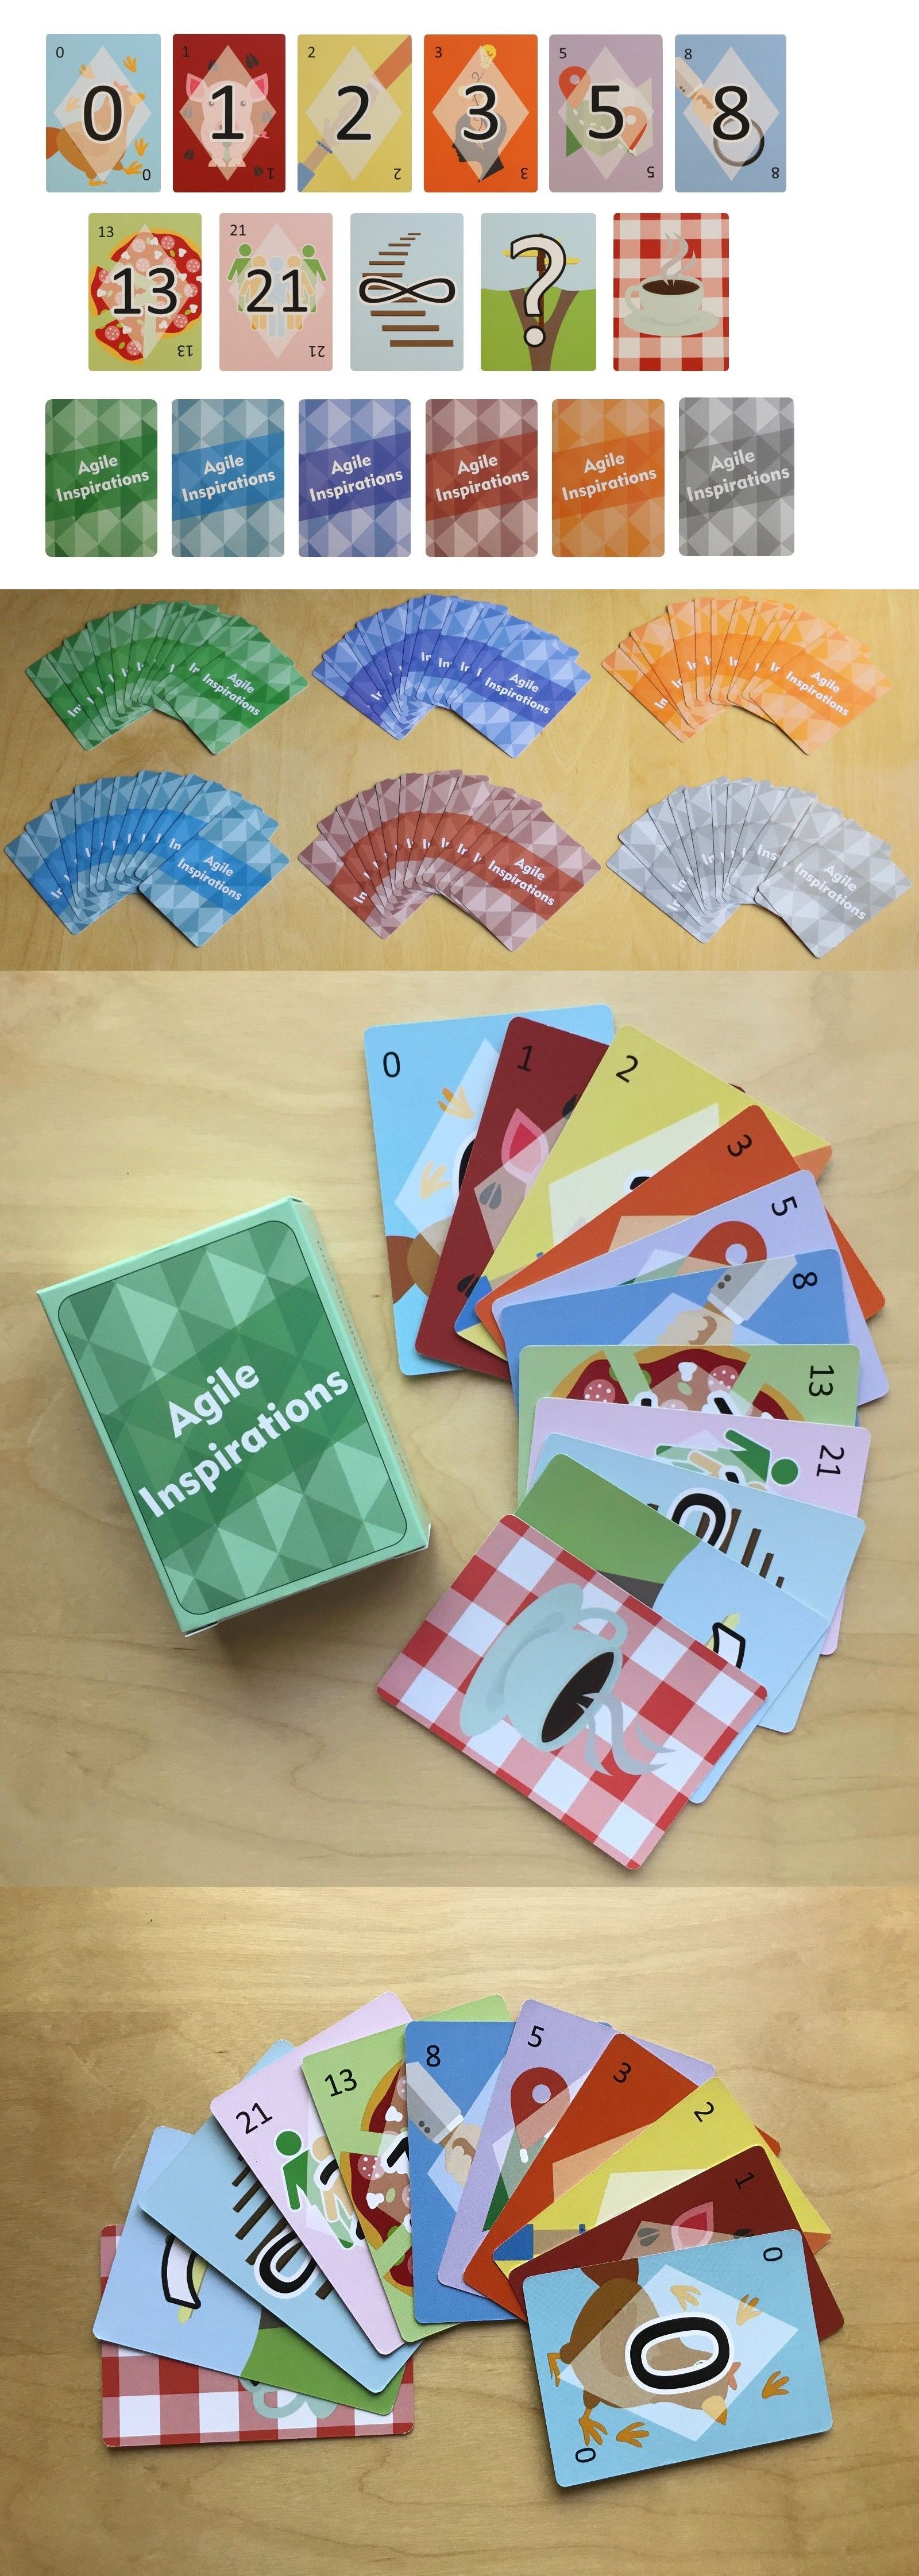 Agile Planning Poker Cards For Estimation Up To 6 Scrum Team Members W 1 Deck 608119842629 Ebay Planning Poker Poker Cards Cards